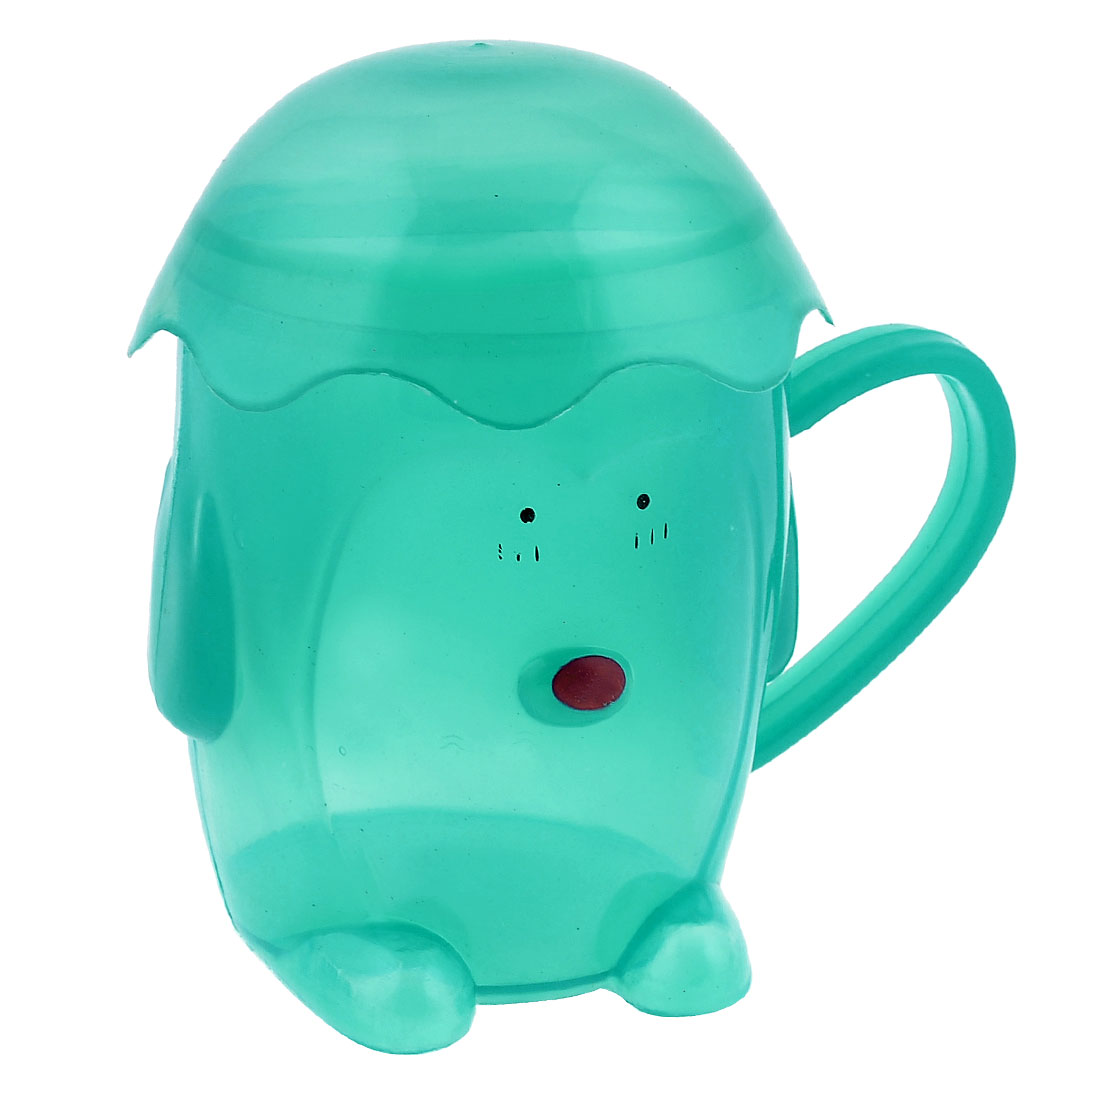 Drink Cartoon Doll Design Plastic Grip Cup Teal Green for Children